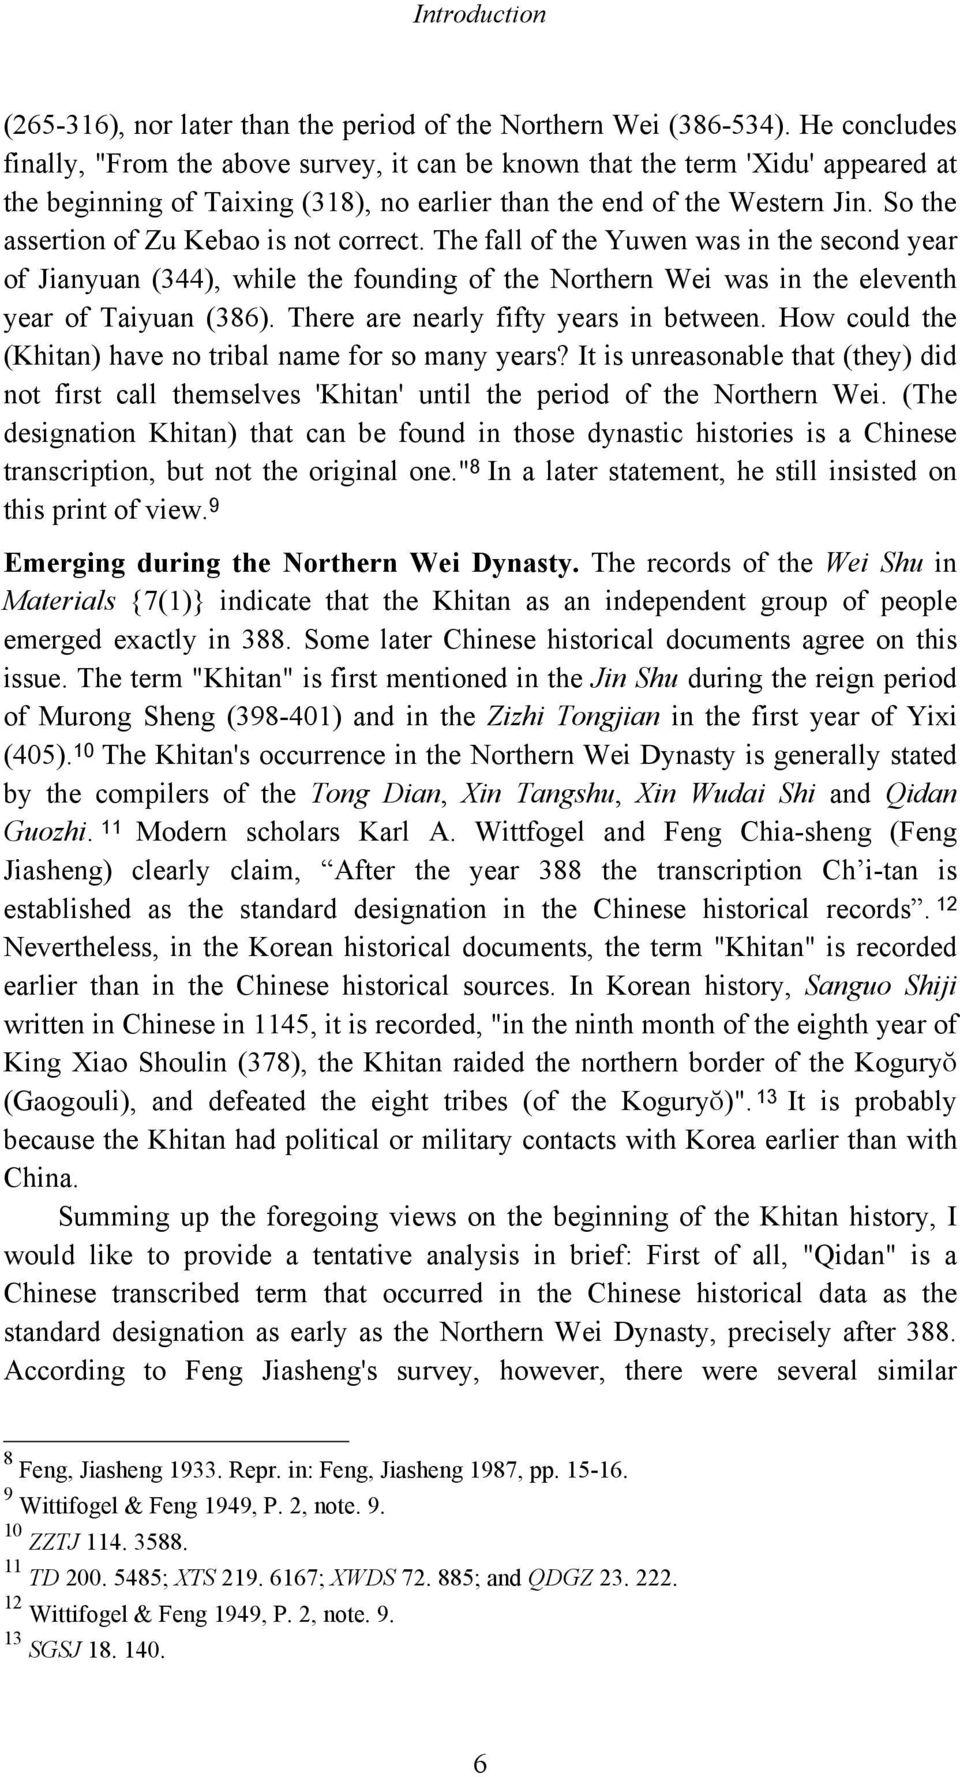 So the assertion of Zu Kebao is not correct. The fall of the Yuwen was in the second year of Jianyuan (344), while the founding of the Northern Wei was in the eleventh year of Taiyuan (386).